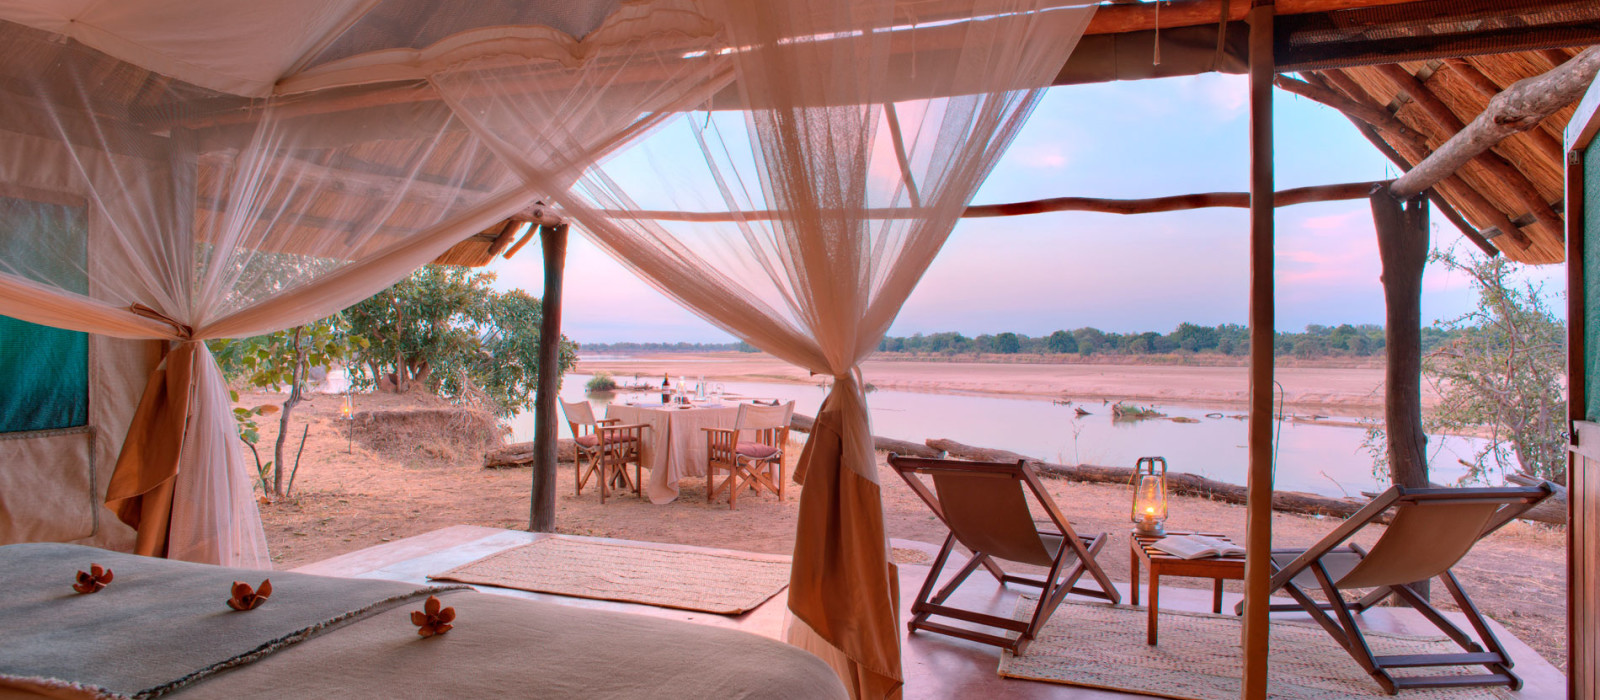 Hotel Kakuli Bush Camp Zambia